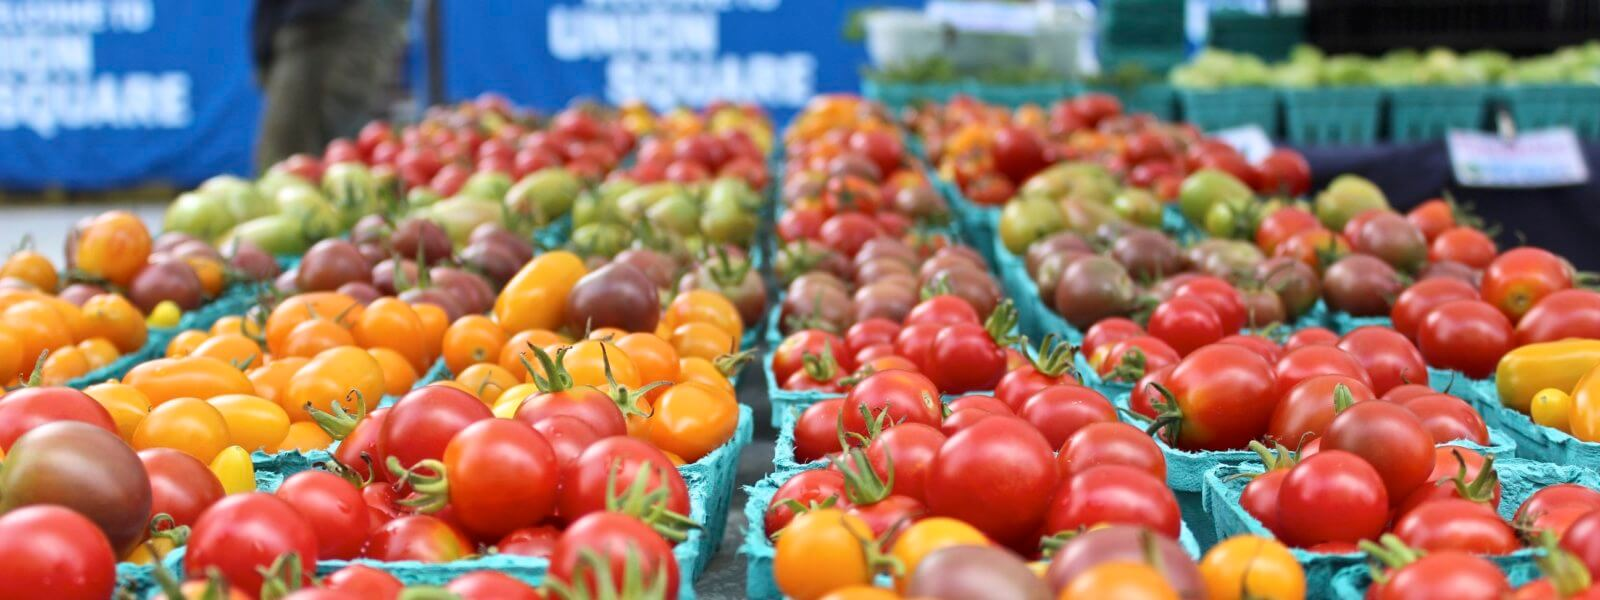 Tomatoes of all colors packed in punnets.